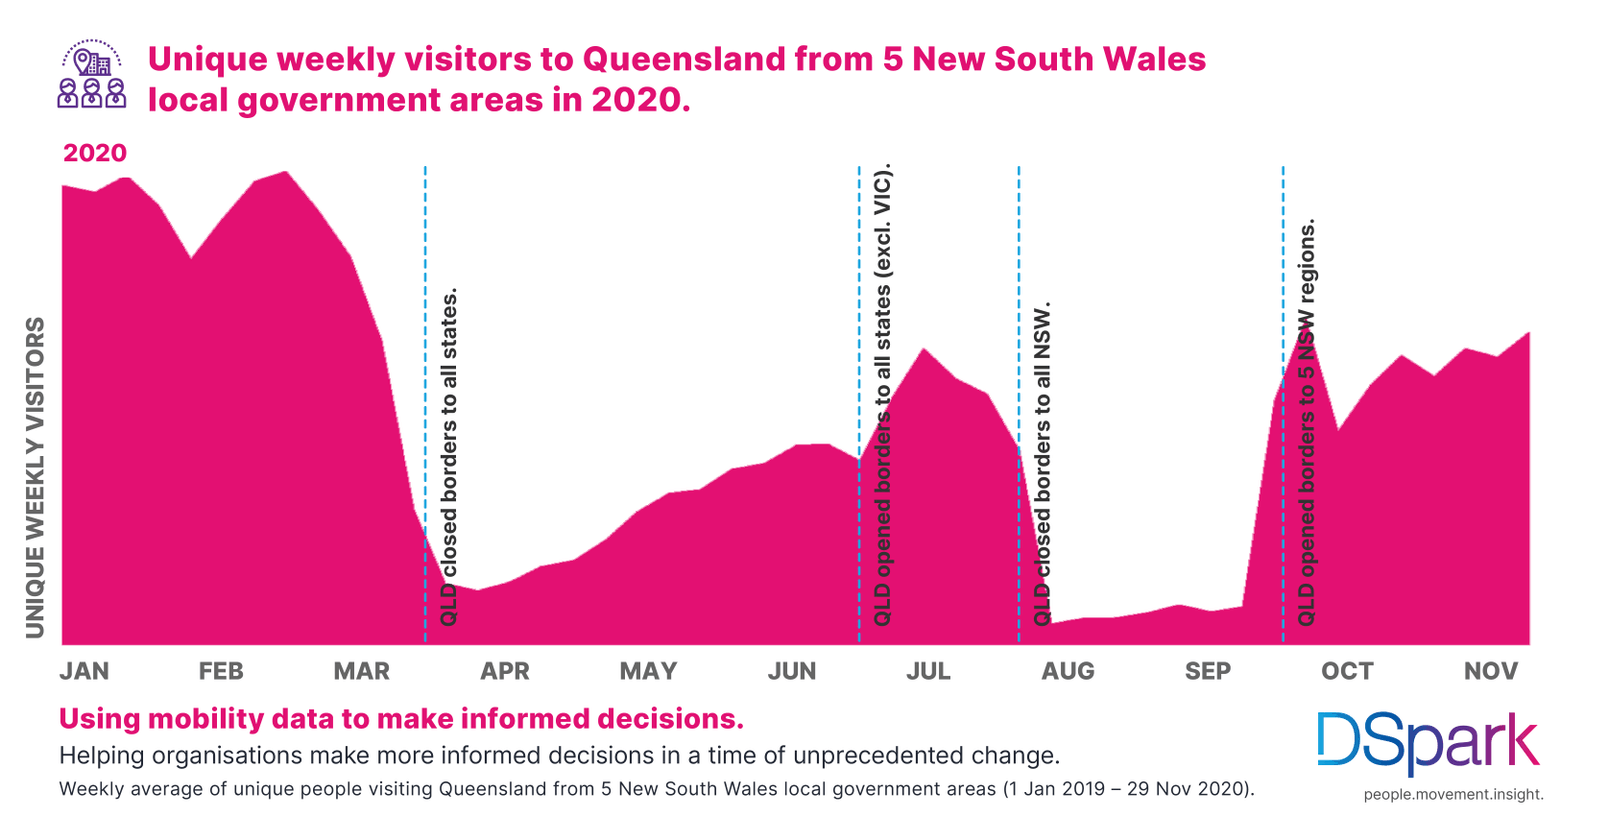 Visitors to Queensland from 5 New South Wales local government areas lower in 2020, but improving